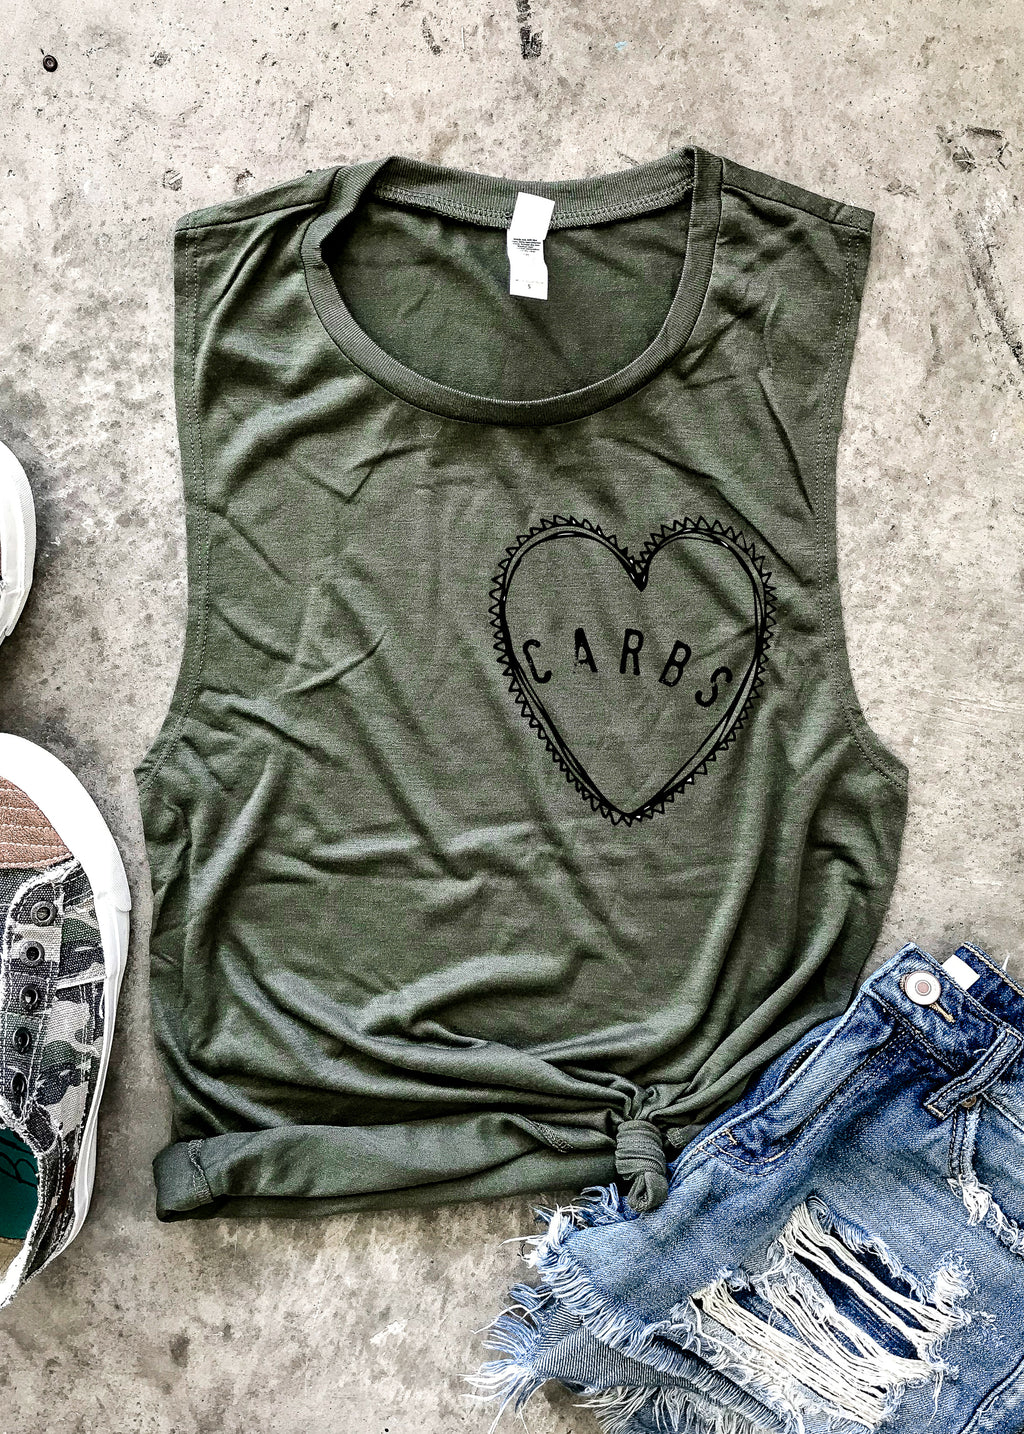 Carbs Heart Muscle Tank - Military Green